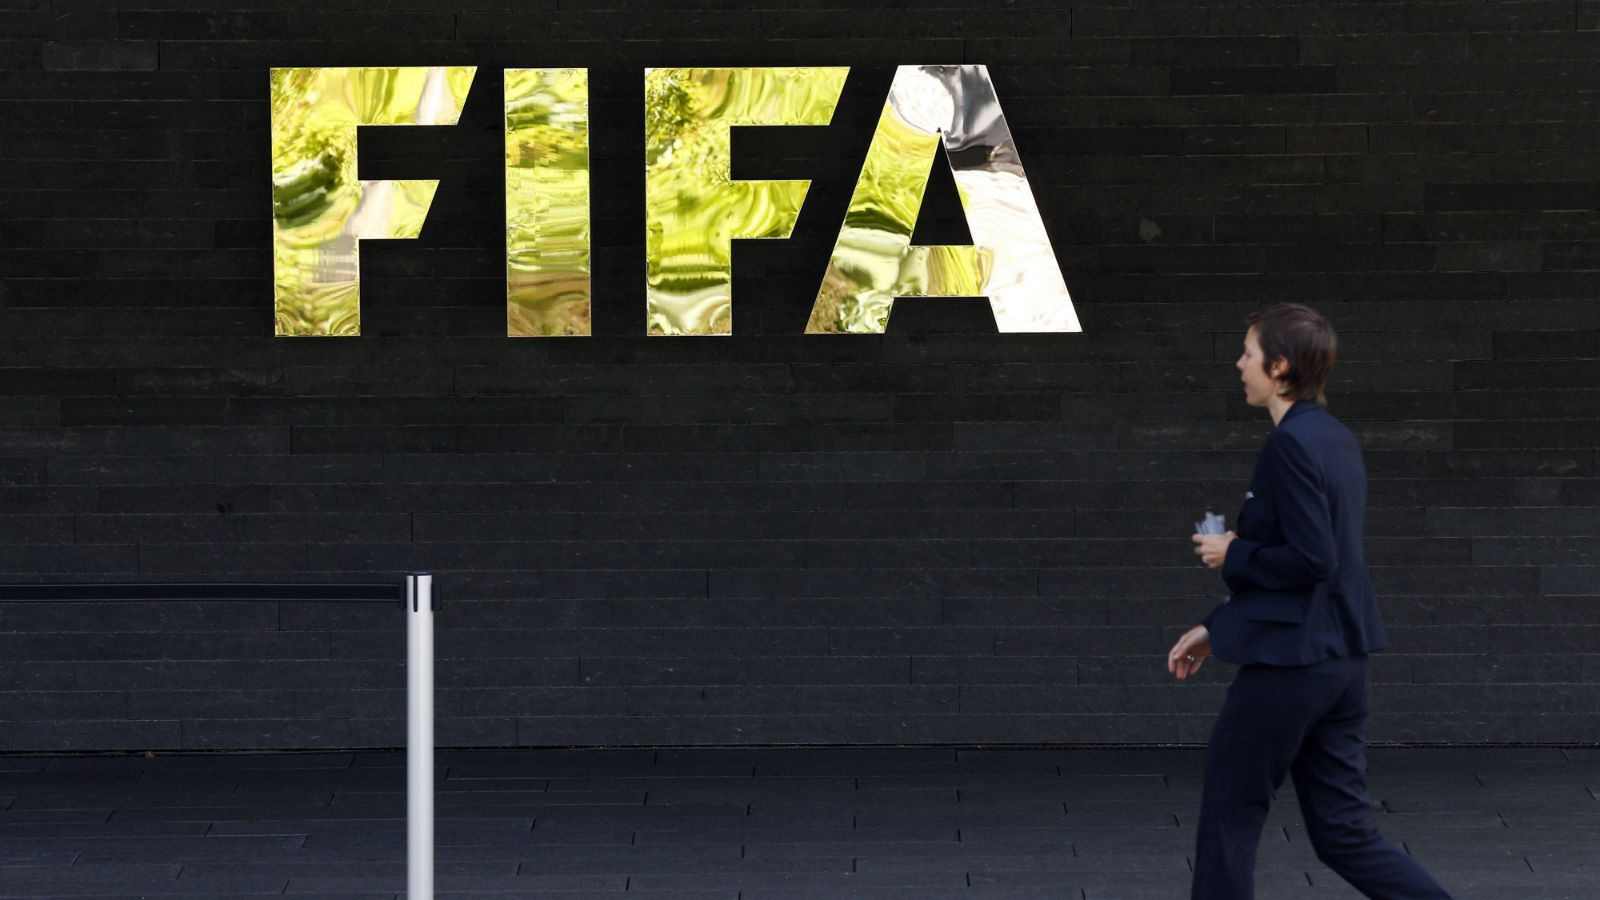 A staff walks past a logo of soccer's international governing body FIFA at their headquarters in Zurich, Switzerland, May 27, 2015. Six soccer officials were arrested in Zurich on Wednesday and detained pending extradition to the United States over suspected corruption at soccer's governing body FIFA, the Swiss Federal Office of Justice said in a statement.